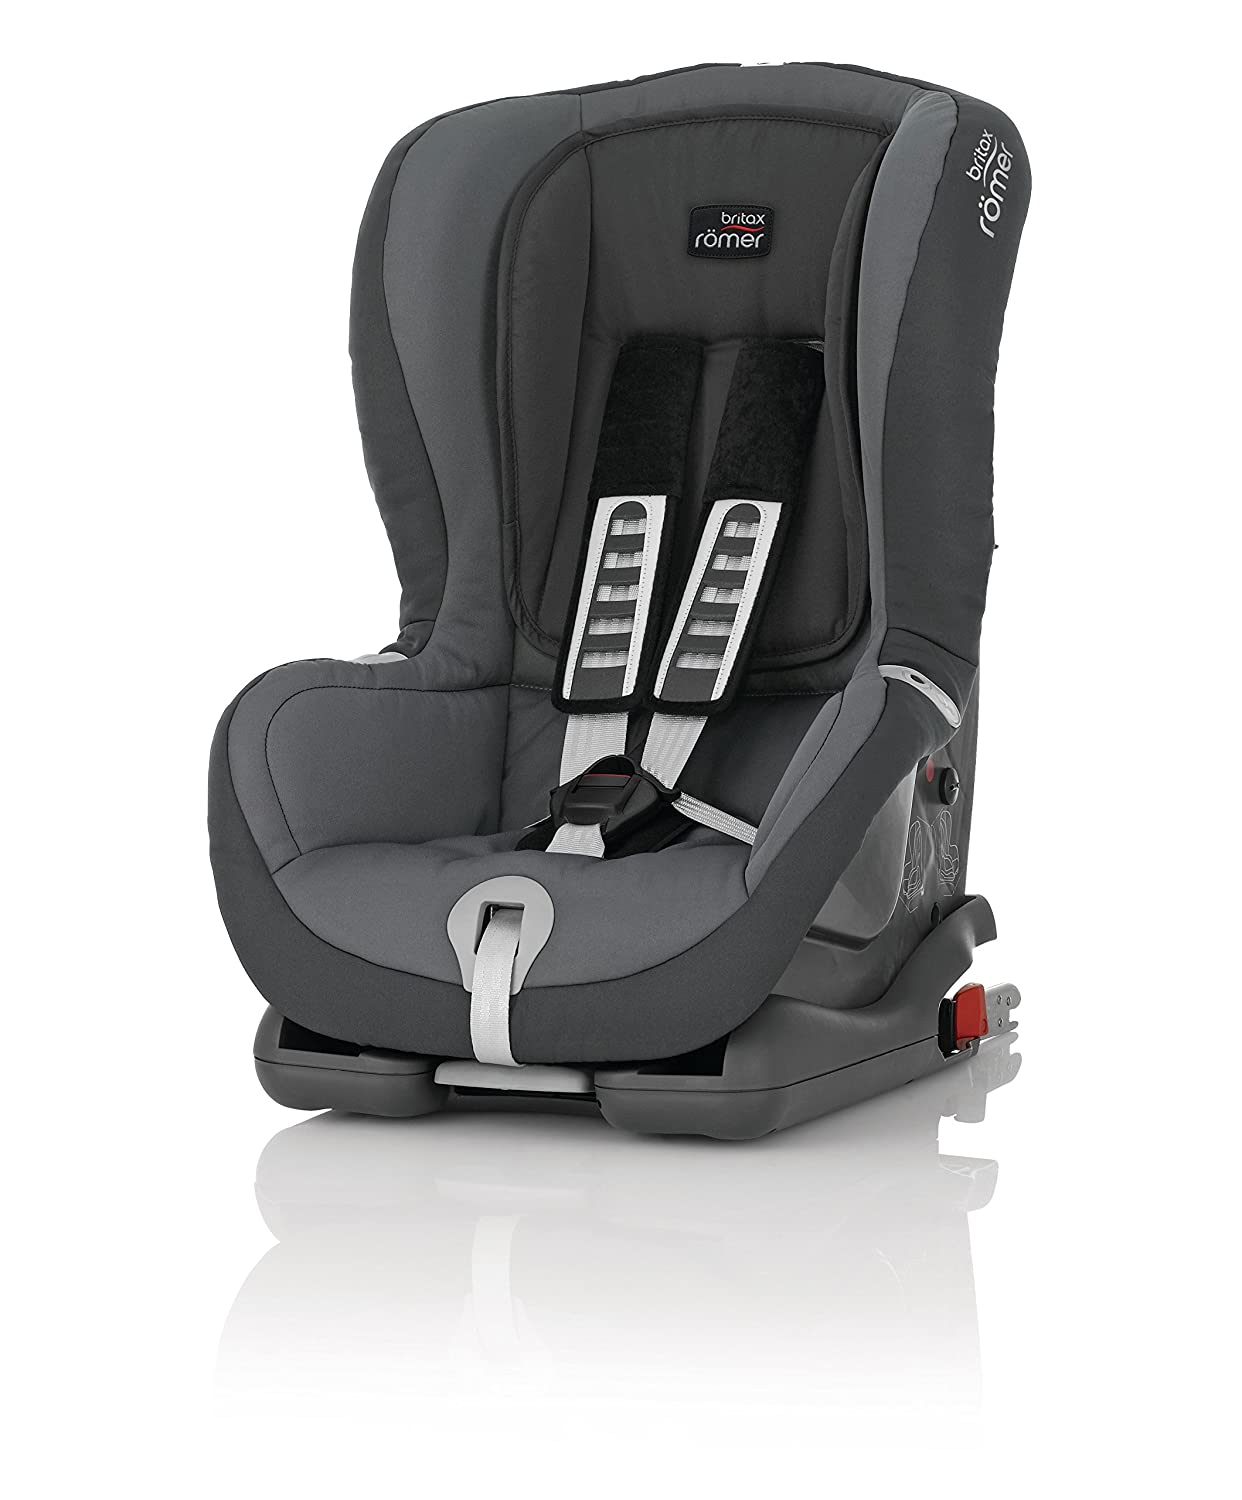 fotelik britax romer duo plus isofix 9 18 kg black 5747057708 oficjalne archiwum allegro. Black Bedroom Furniture Sets. Home Design Ideas